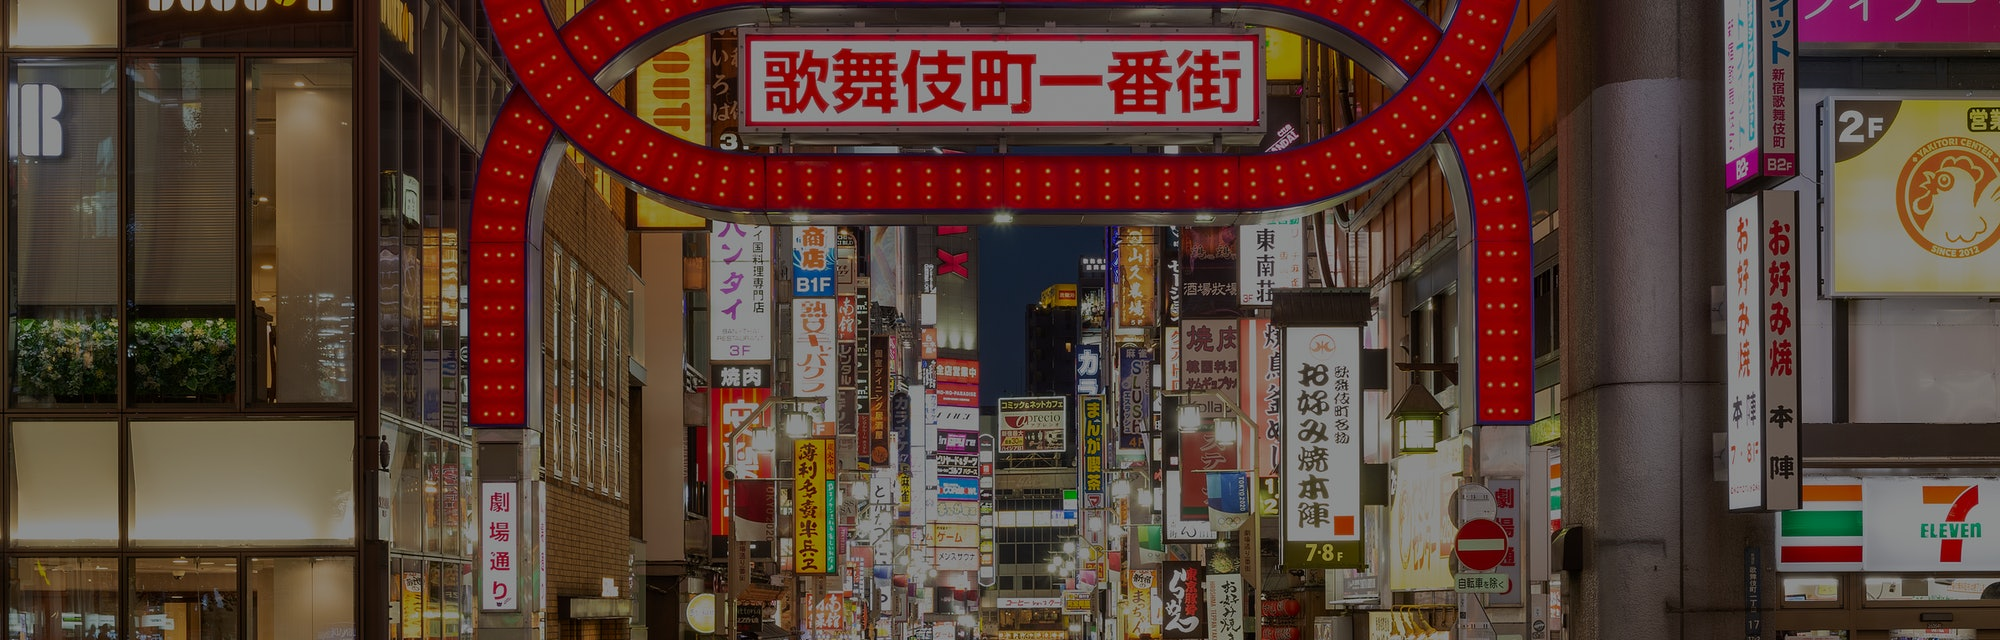 Kabukicho, Tokyo's red-light district